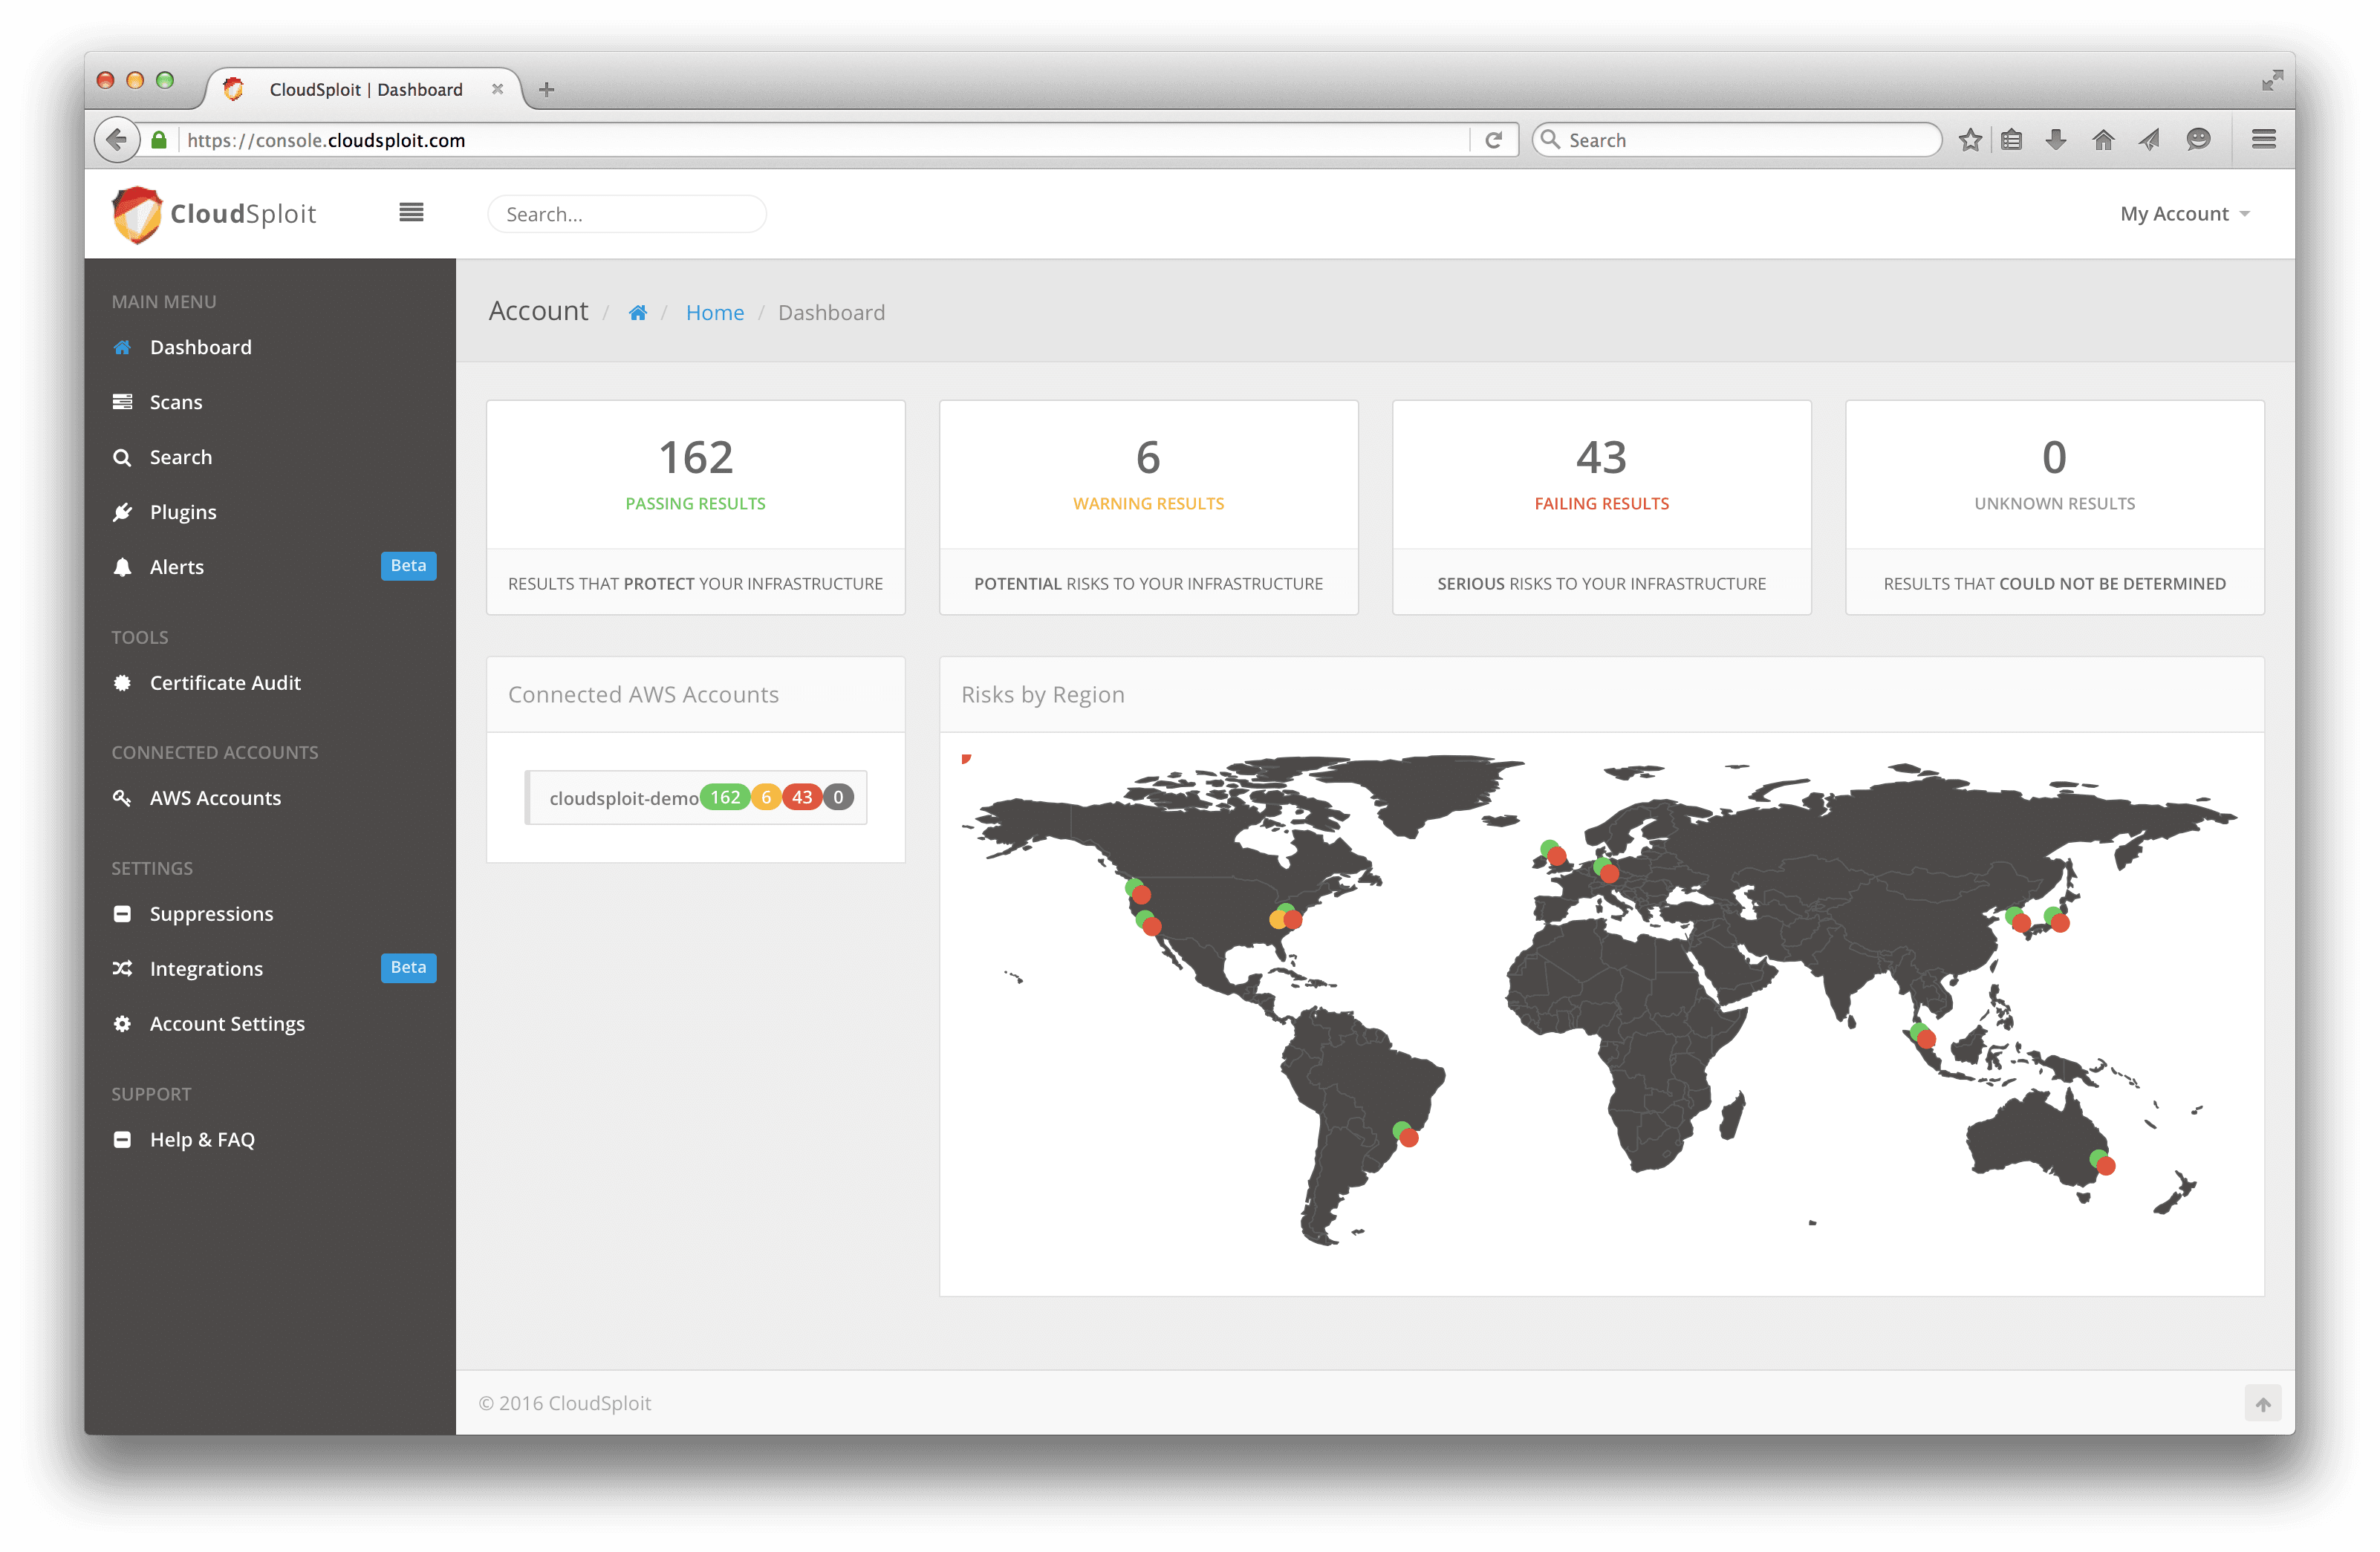 The dashboard shows an overview of regional results for quick detection of hidden risks